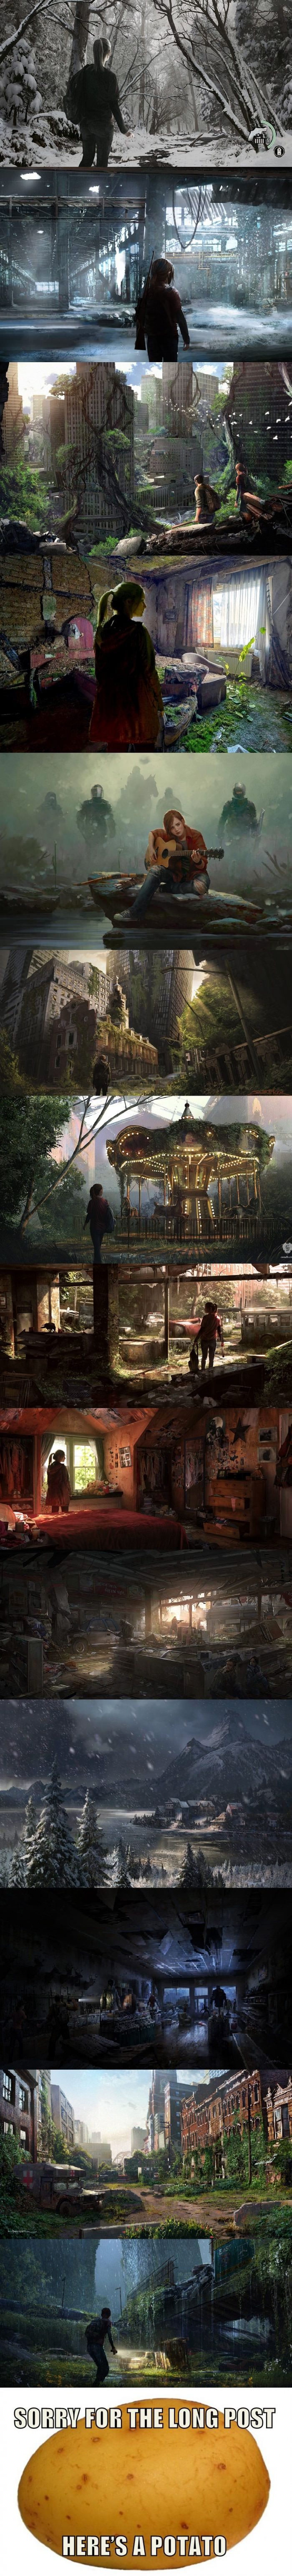 The Last of Us fan art - 9GAG